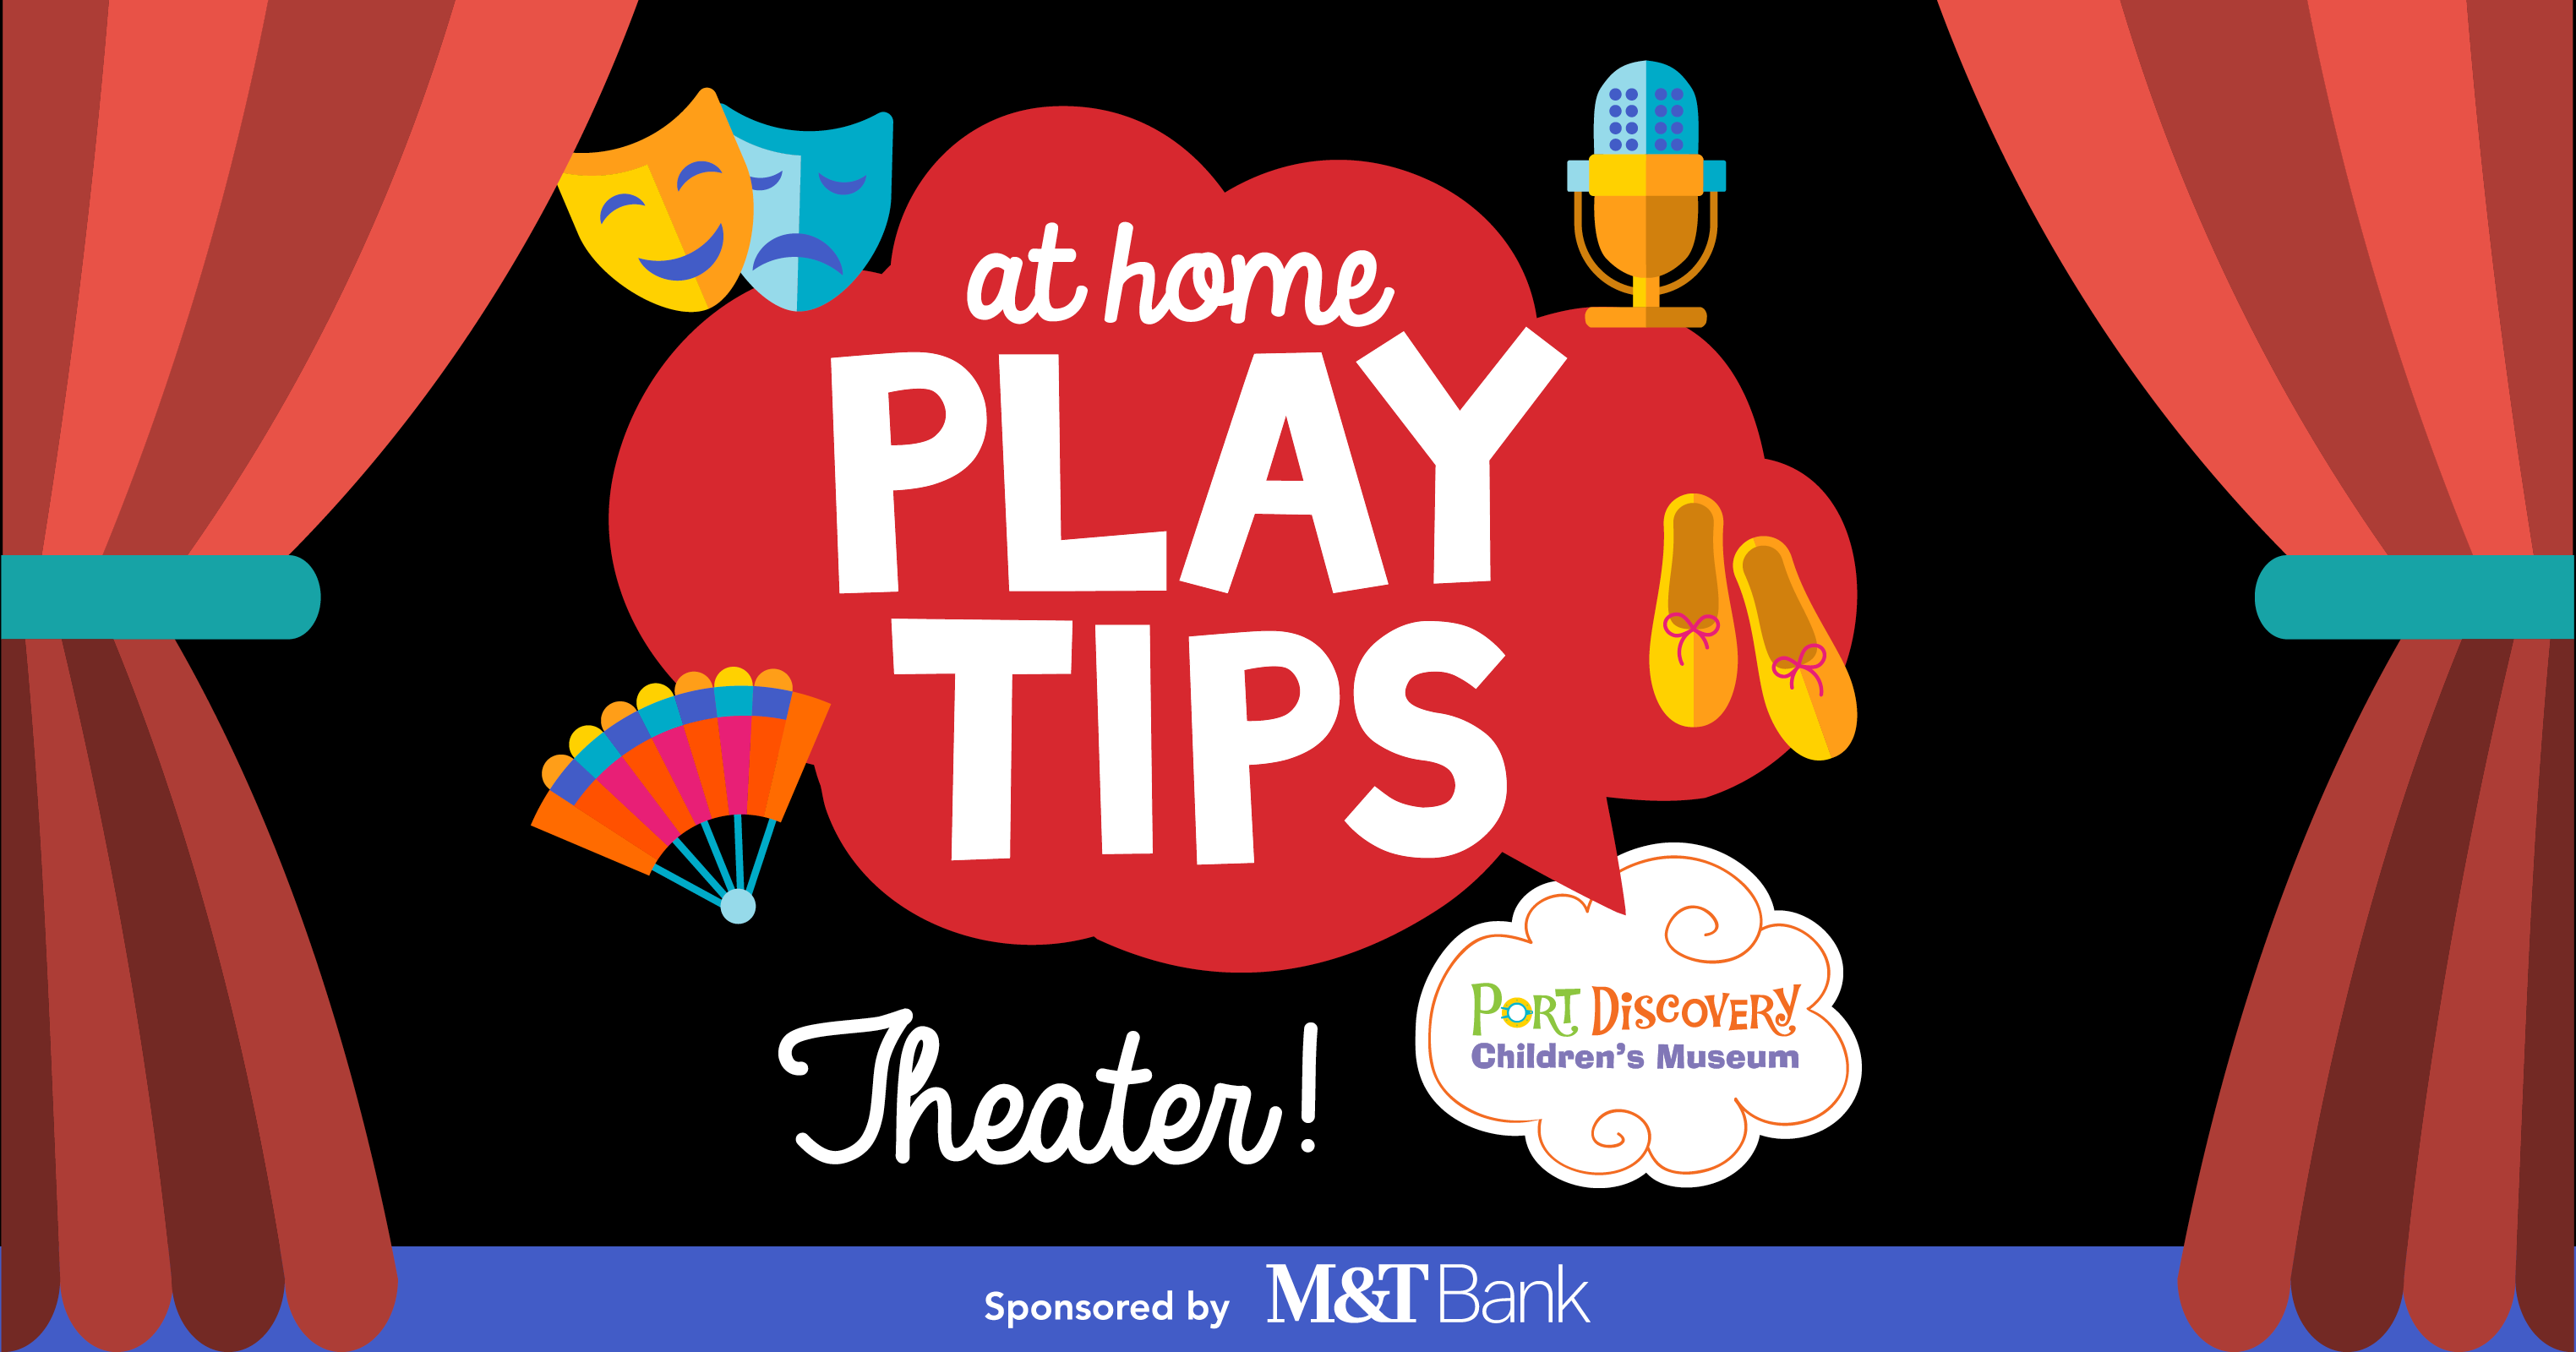 At Home Play Tips - Theater - Sponsored by M&T Bank